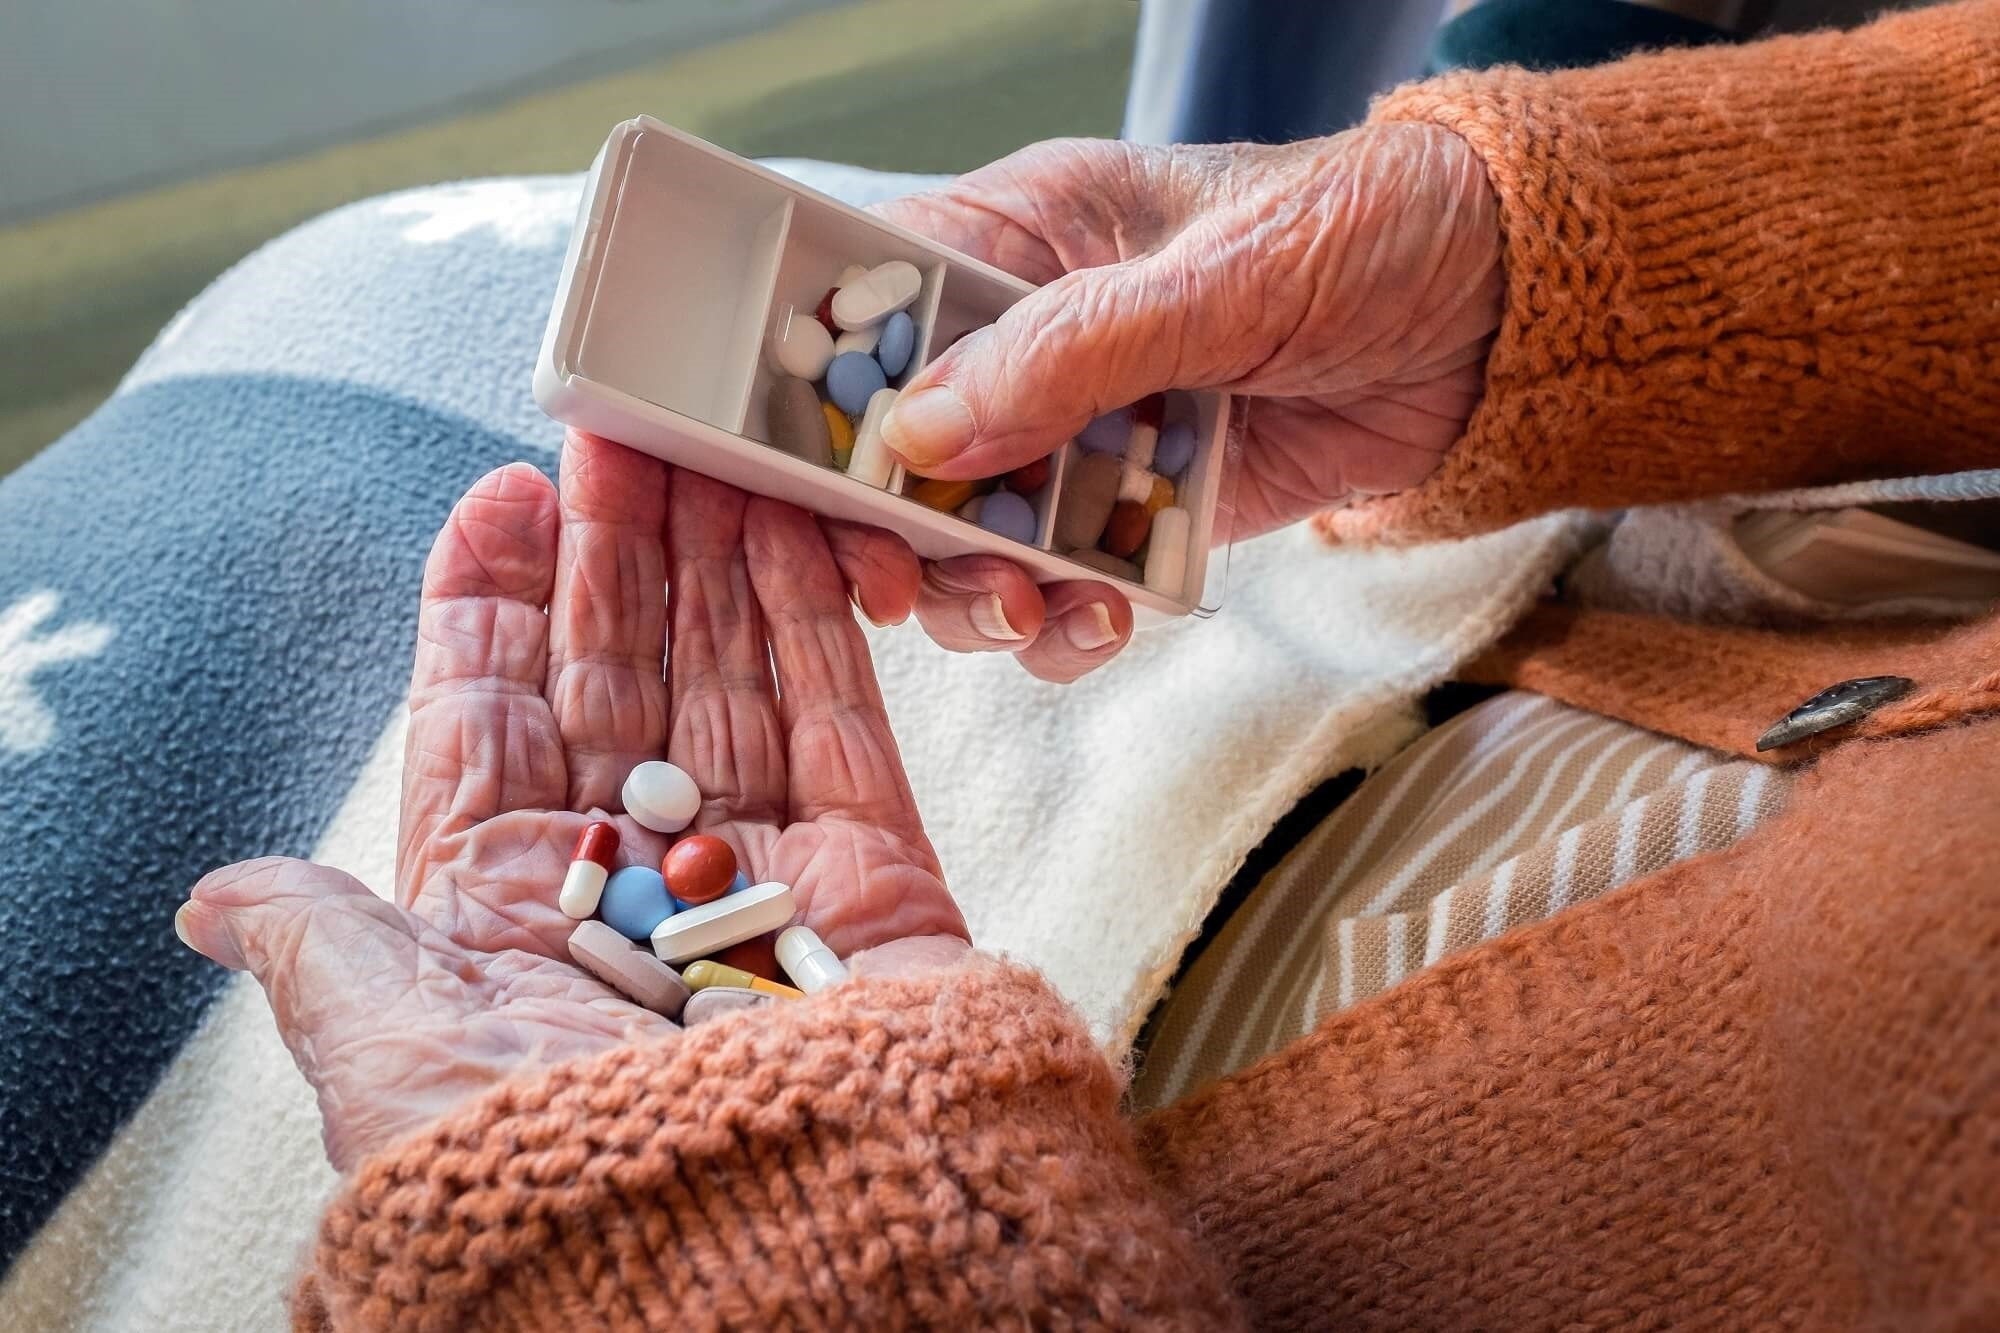 Cognitive Decline Worsens With Memantine, ChEIs in Patients With Alzheimer's